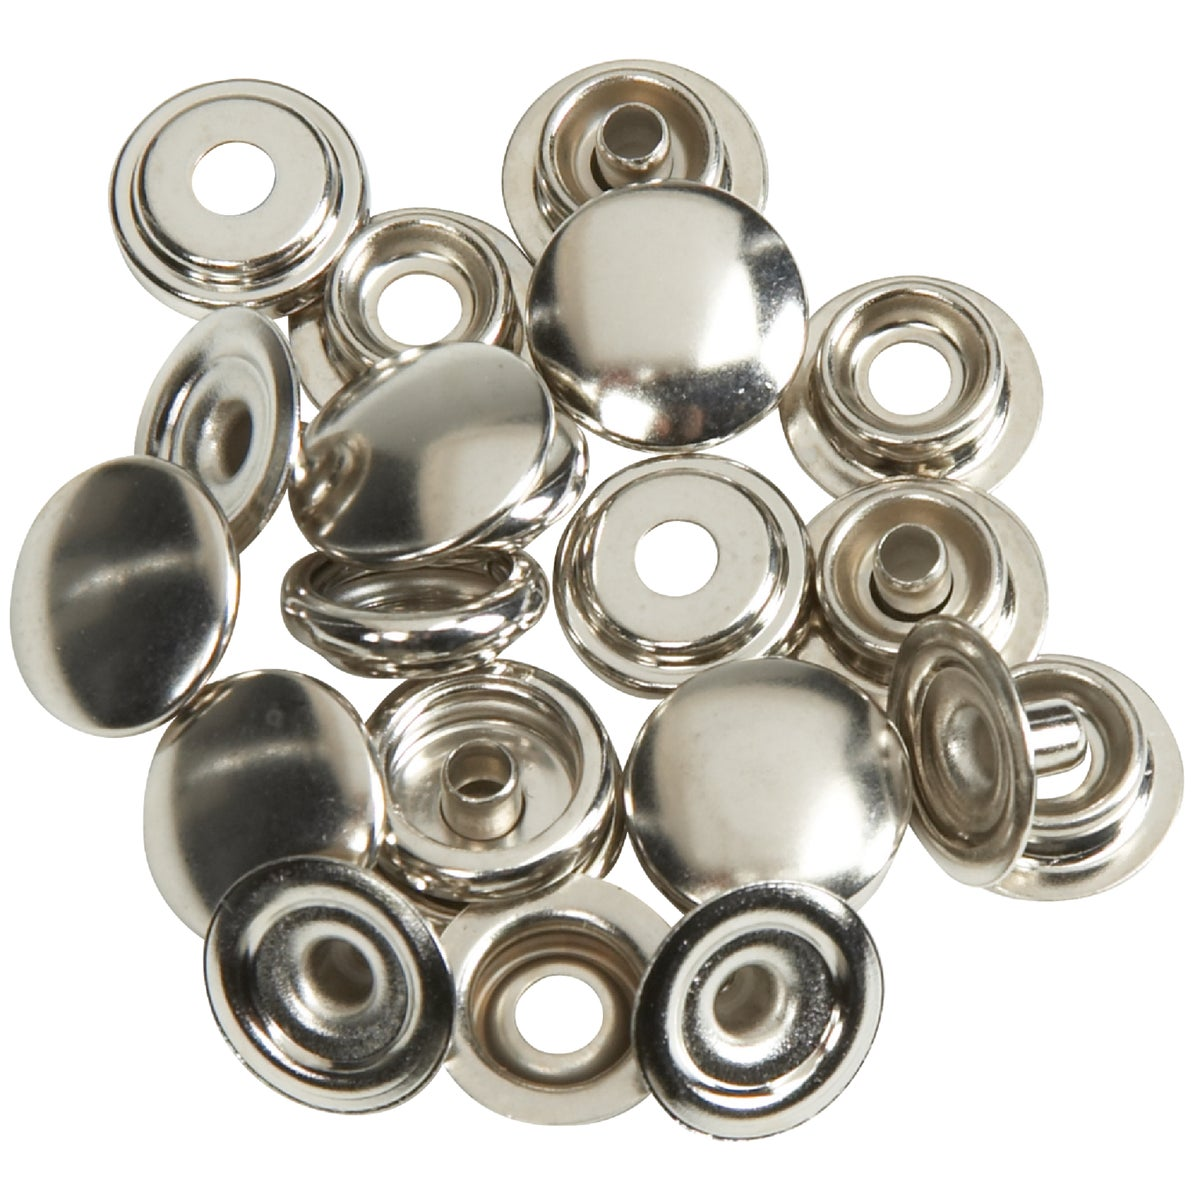 Grommets and Snap Fasteners Jugenheimer Ind Supplies - Page 1